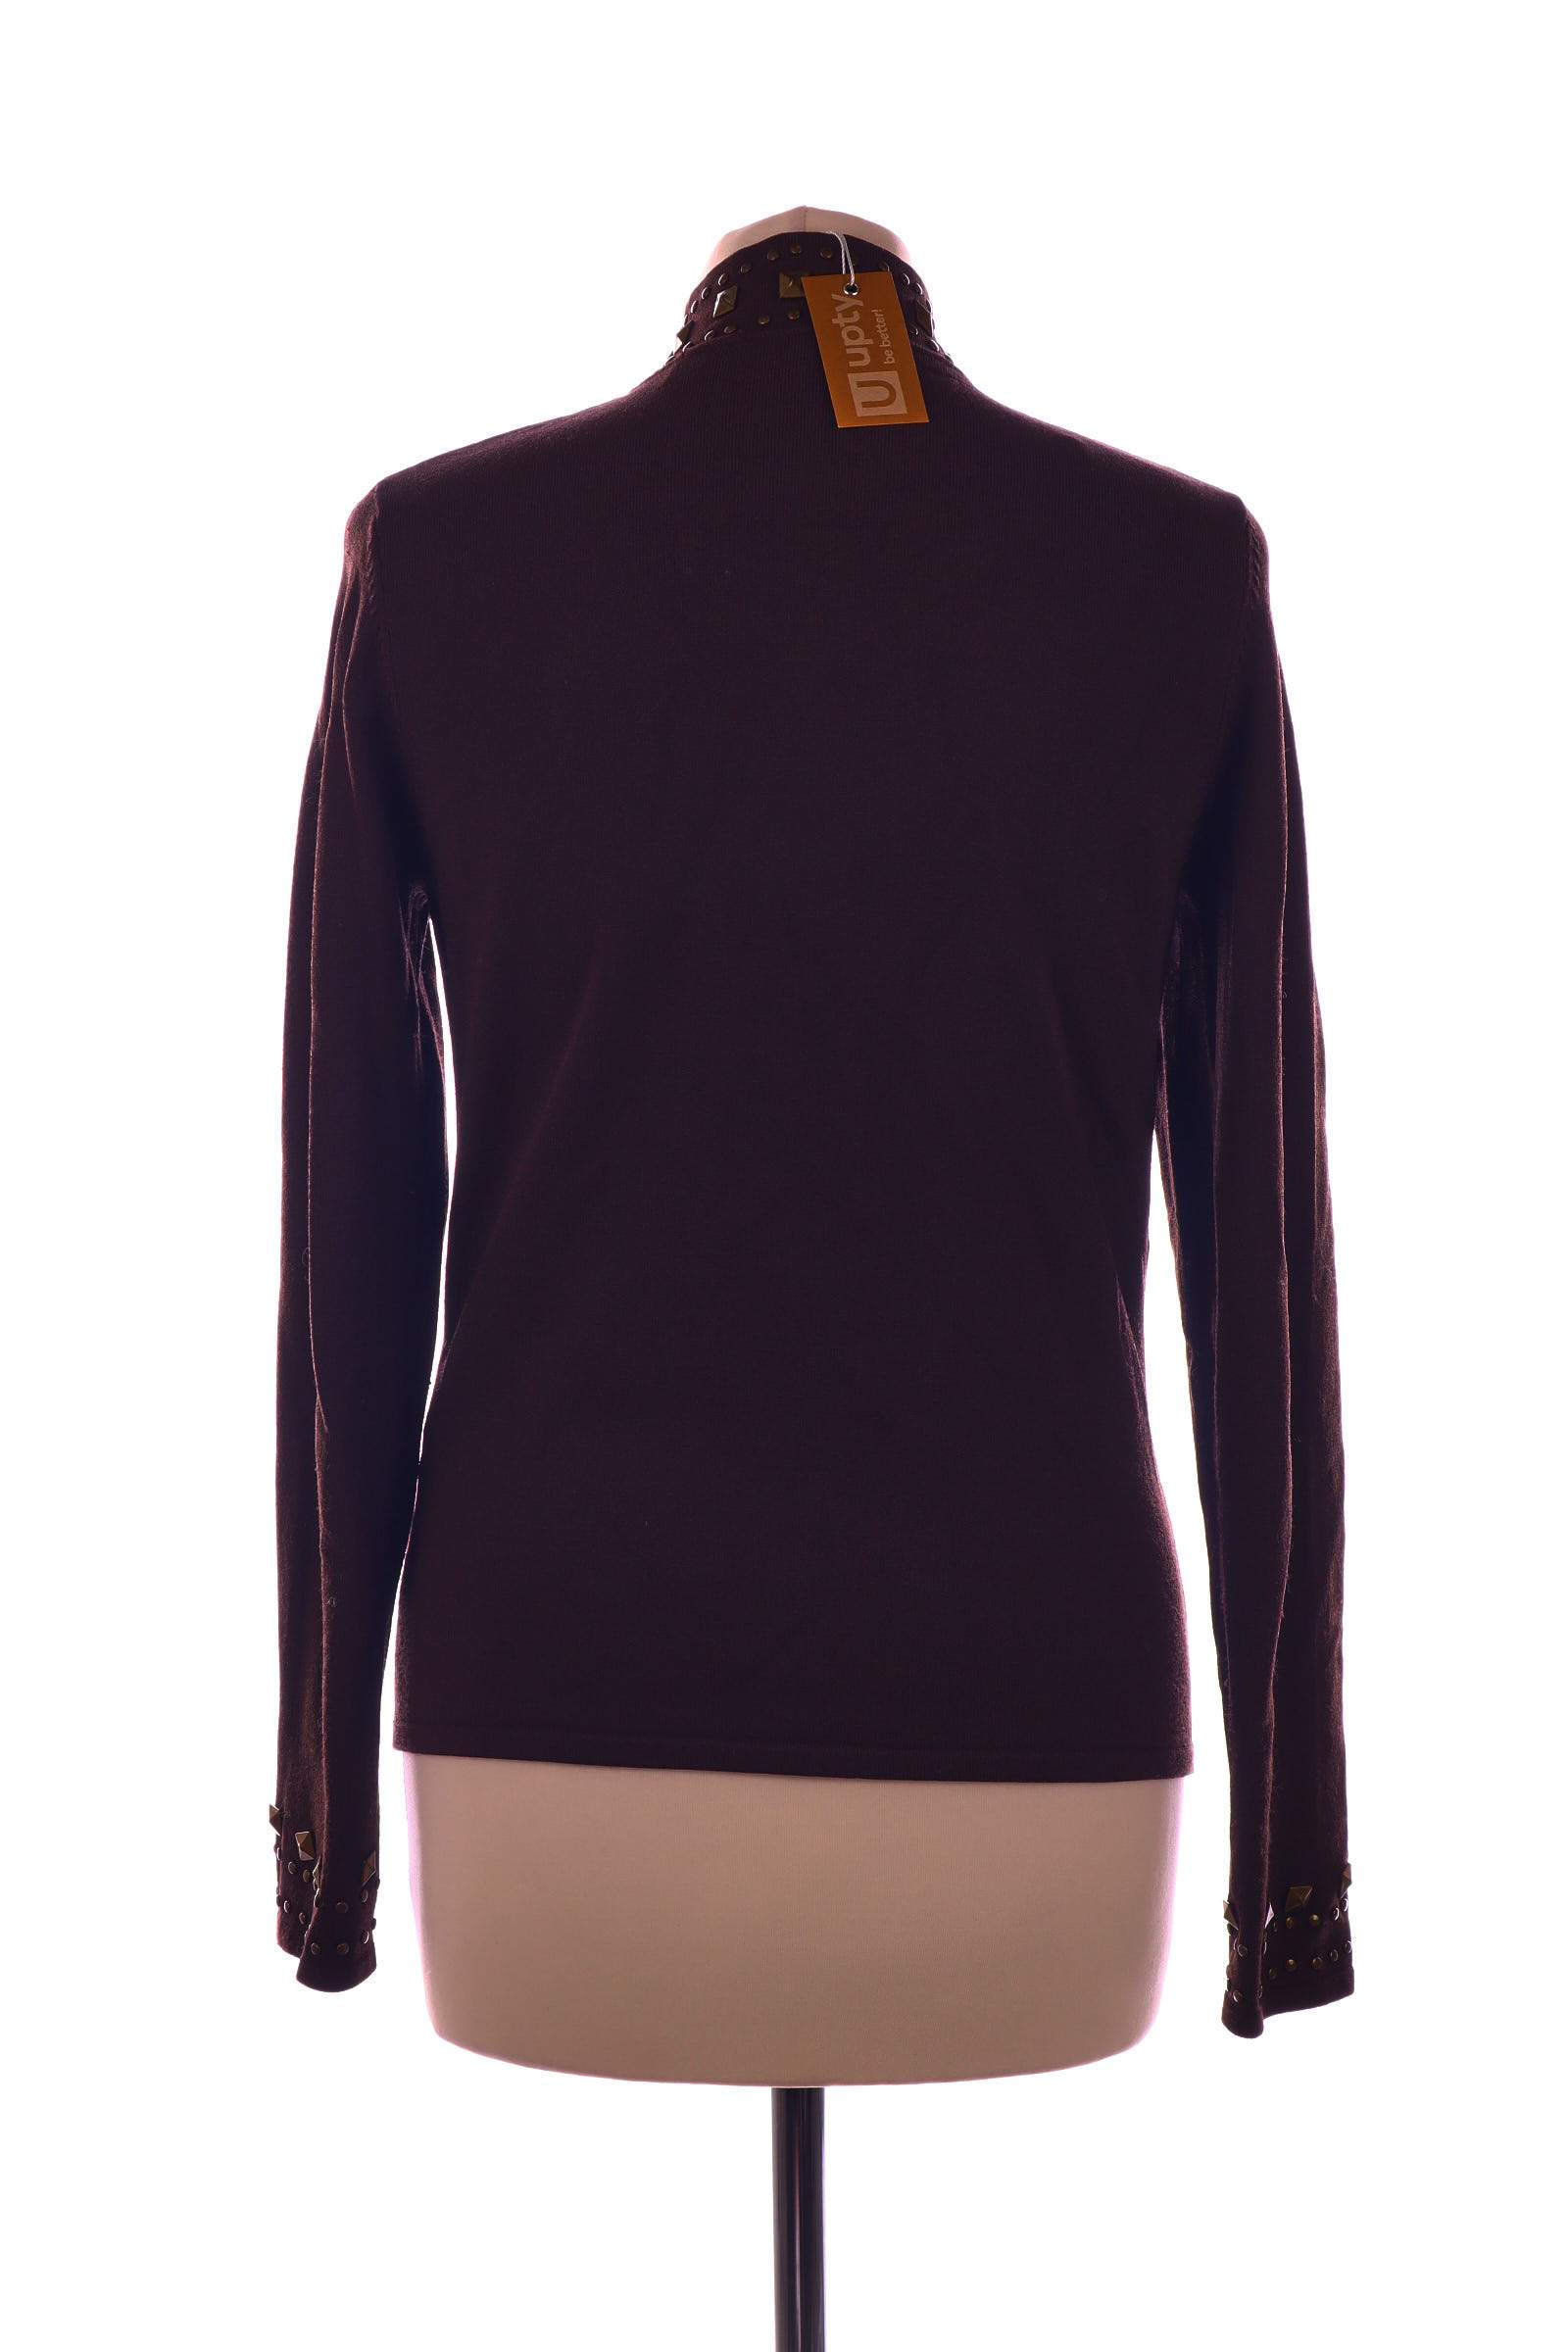 Mosca Brown Sweater